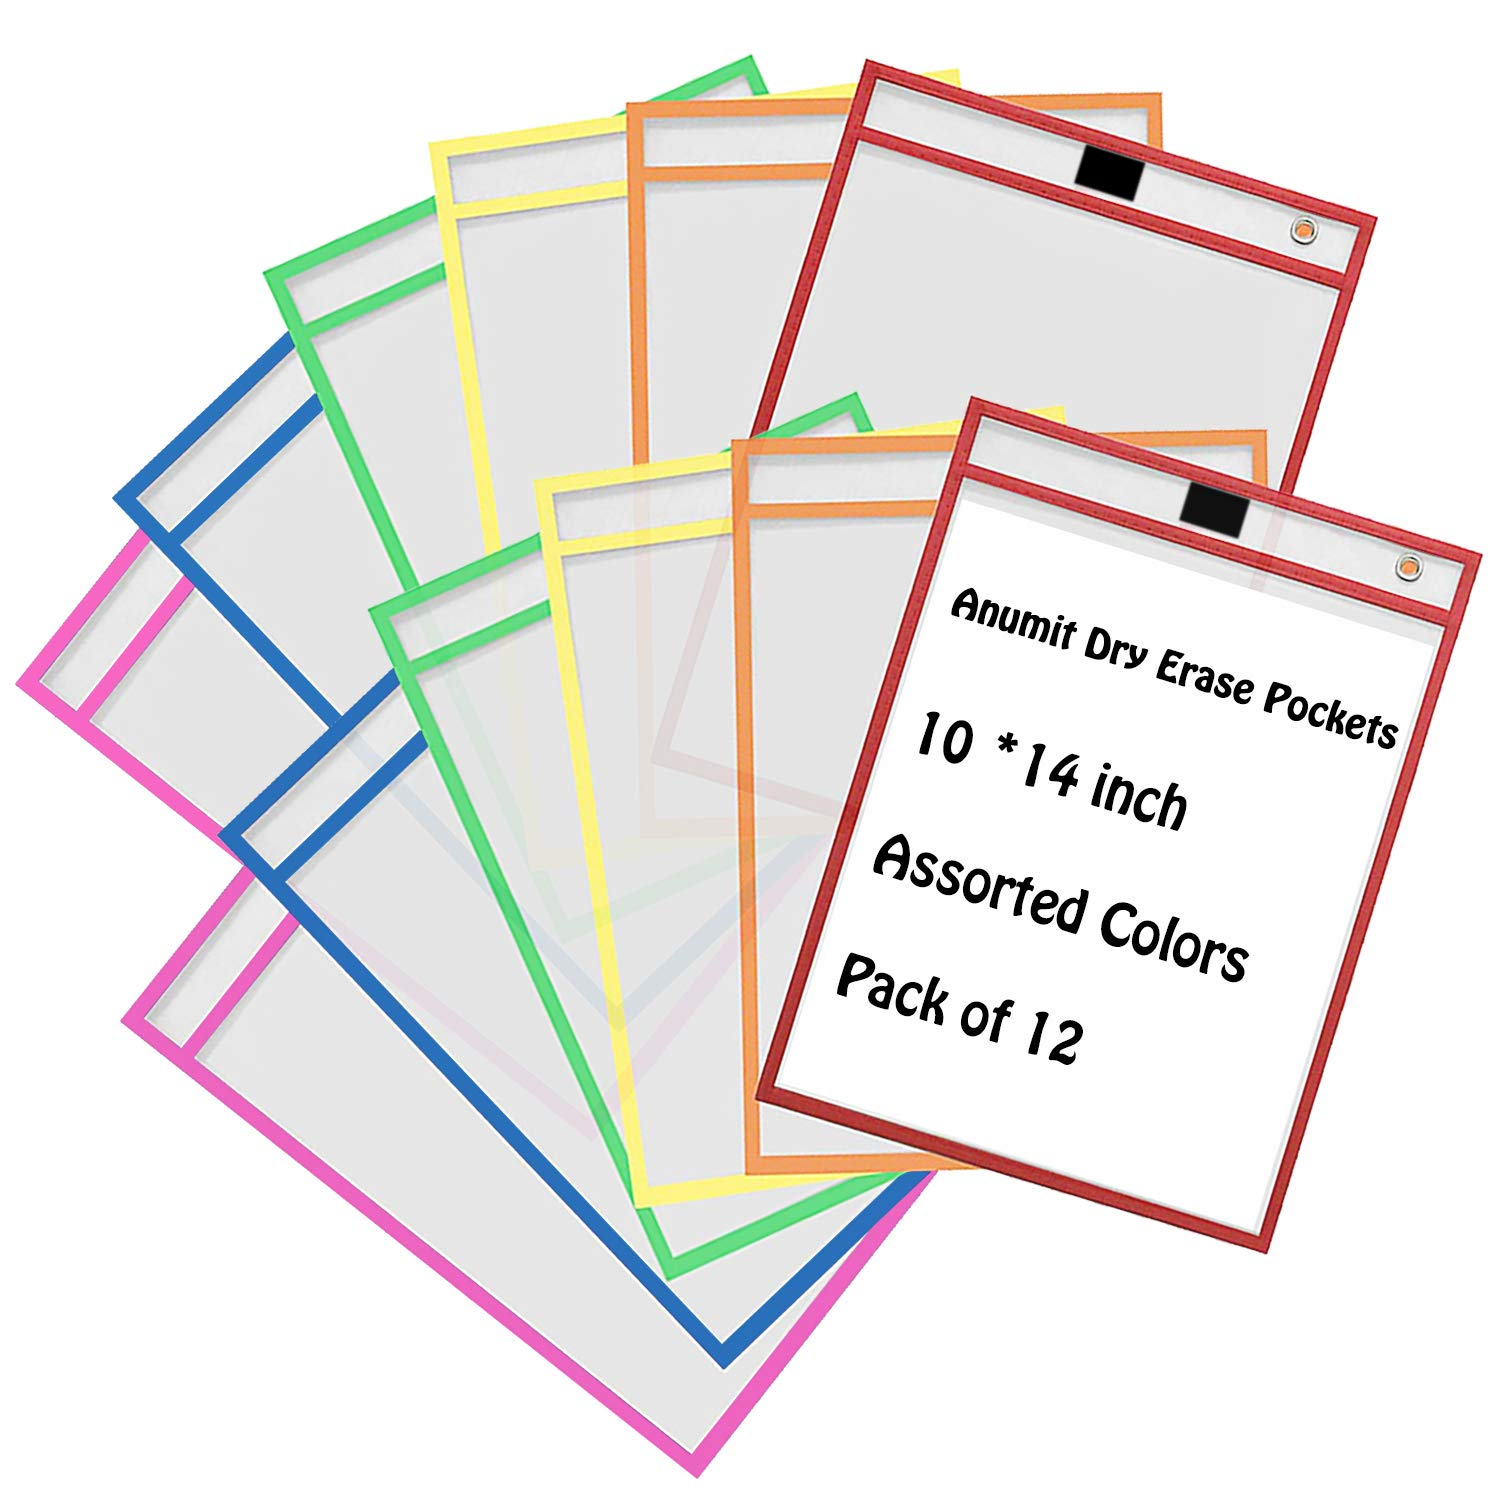 Dry Erase Pockets, Anumit Write and Wipe Reusable Sheet Protectors Plastic Sleeves for Office Learning Classroom Organization & Teaching Supplies,10 x 14 Inches (Assorted Colors Pack of 12)